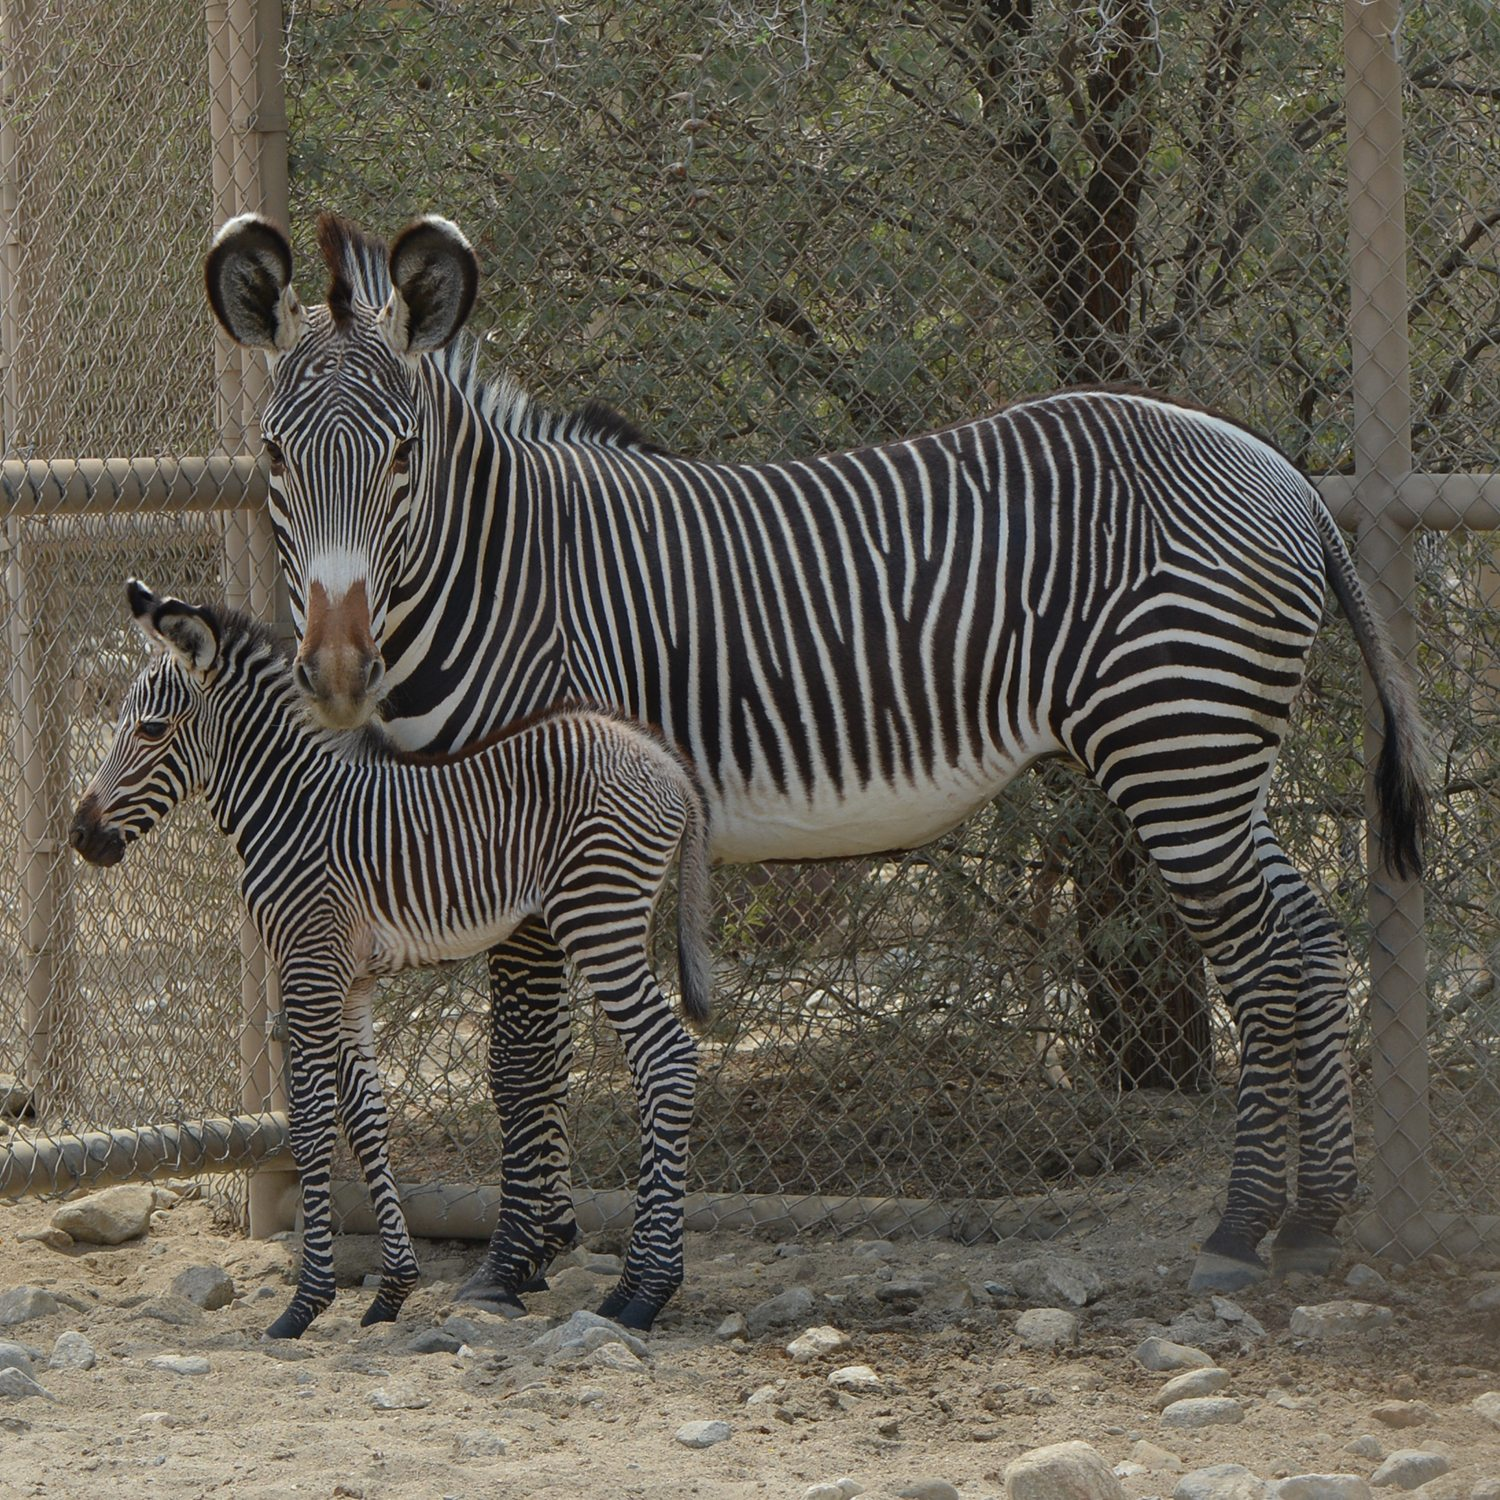 The living desert now has an adorable baby zebra and i can